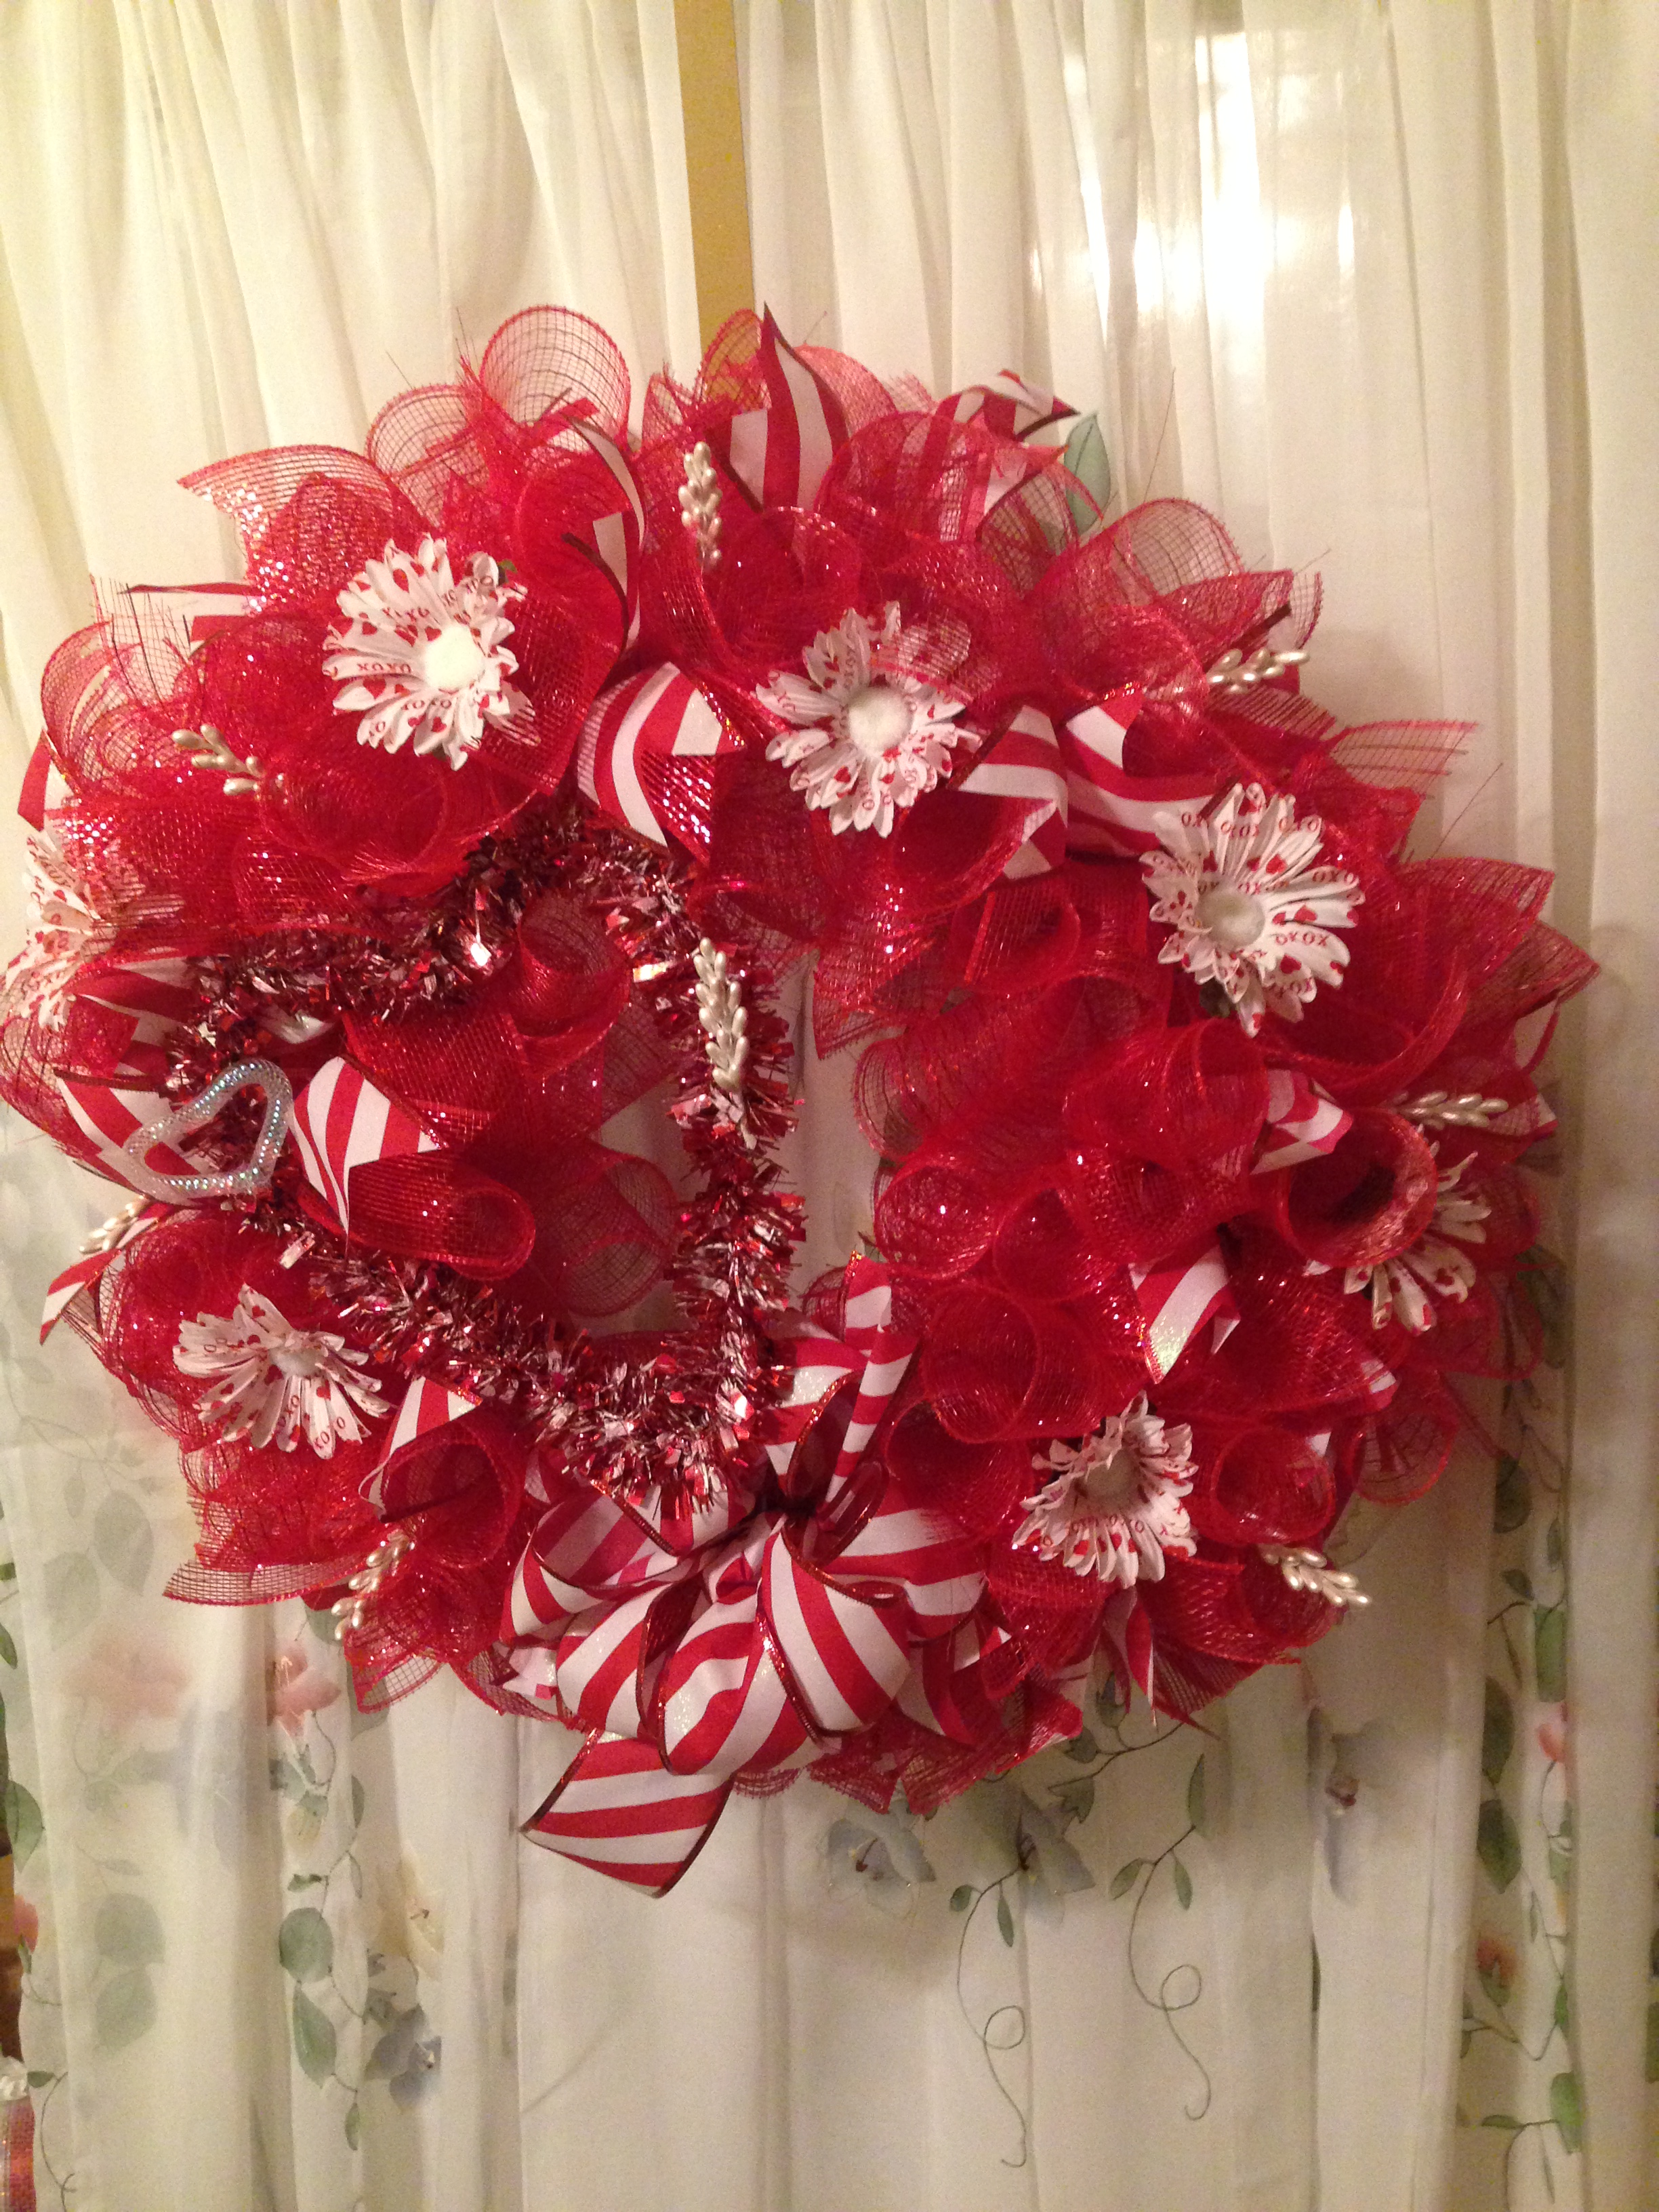 Red Deco Mesh Wreath Heart Tipped White Flowers Striped Ribbon On